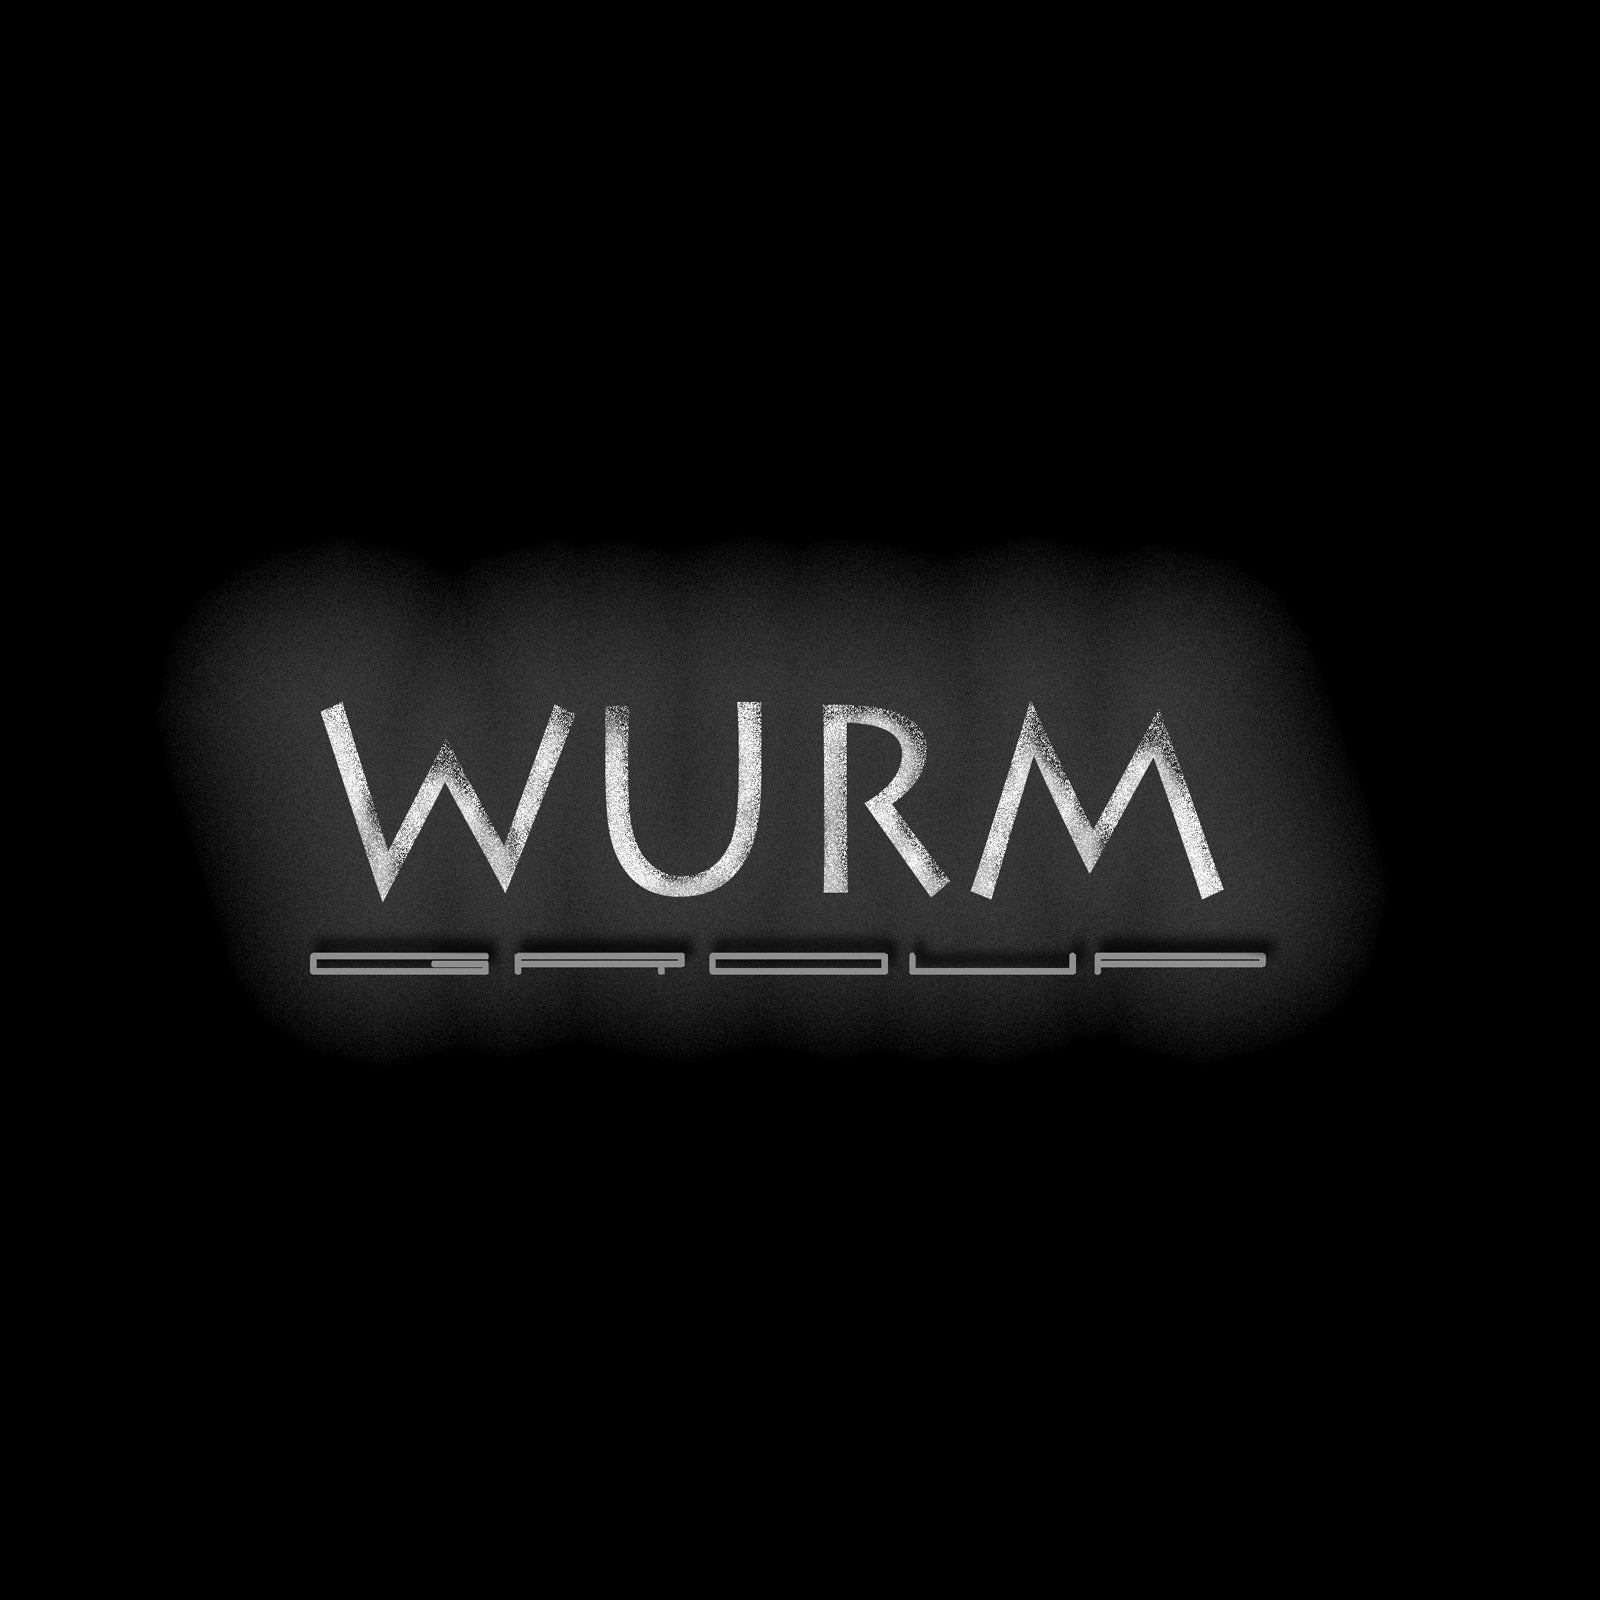 WURMgroup